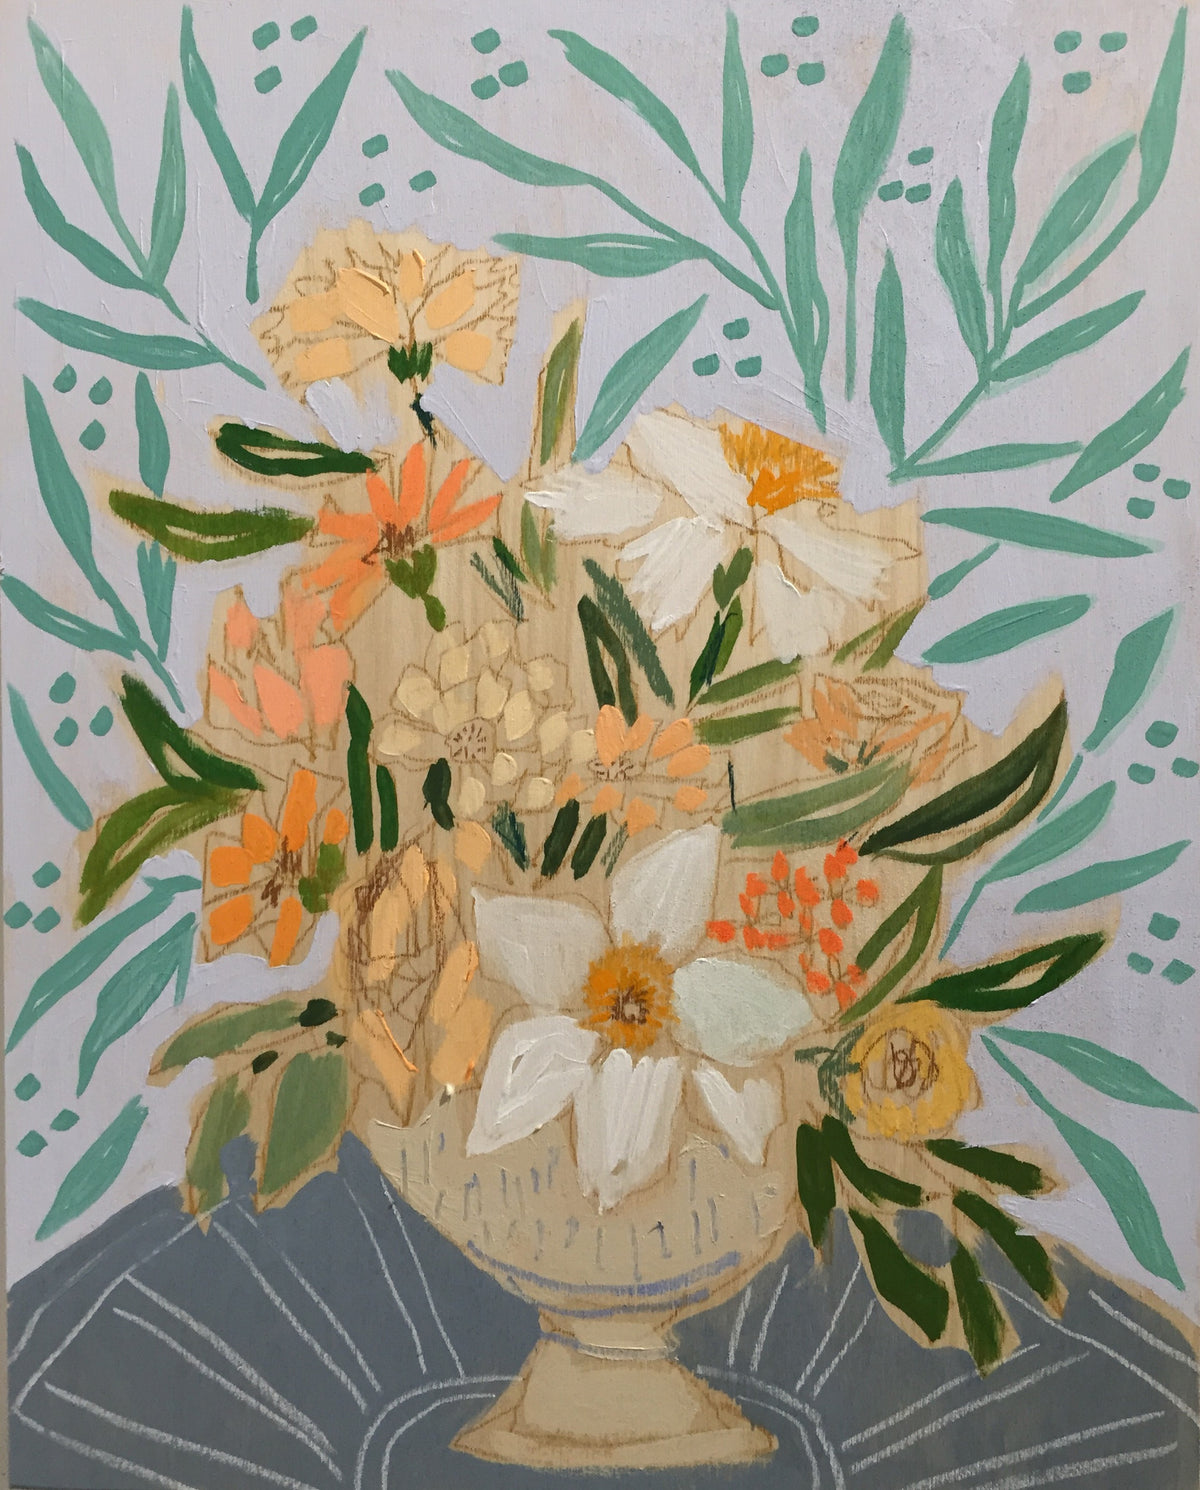 FLOWERS FOR ELLIE - 16X20